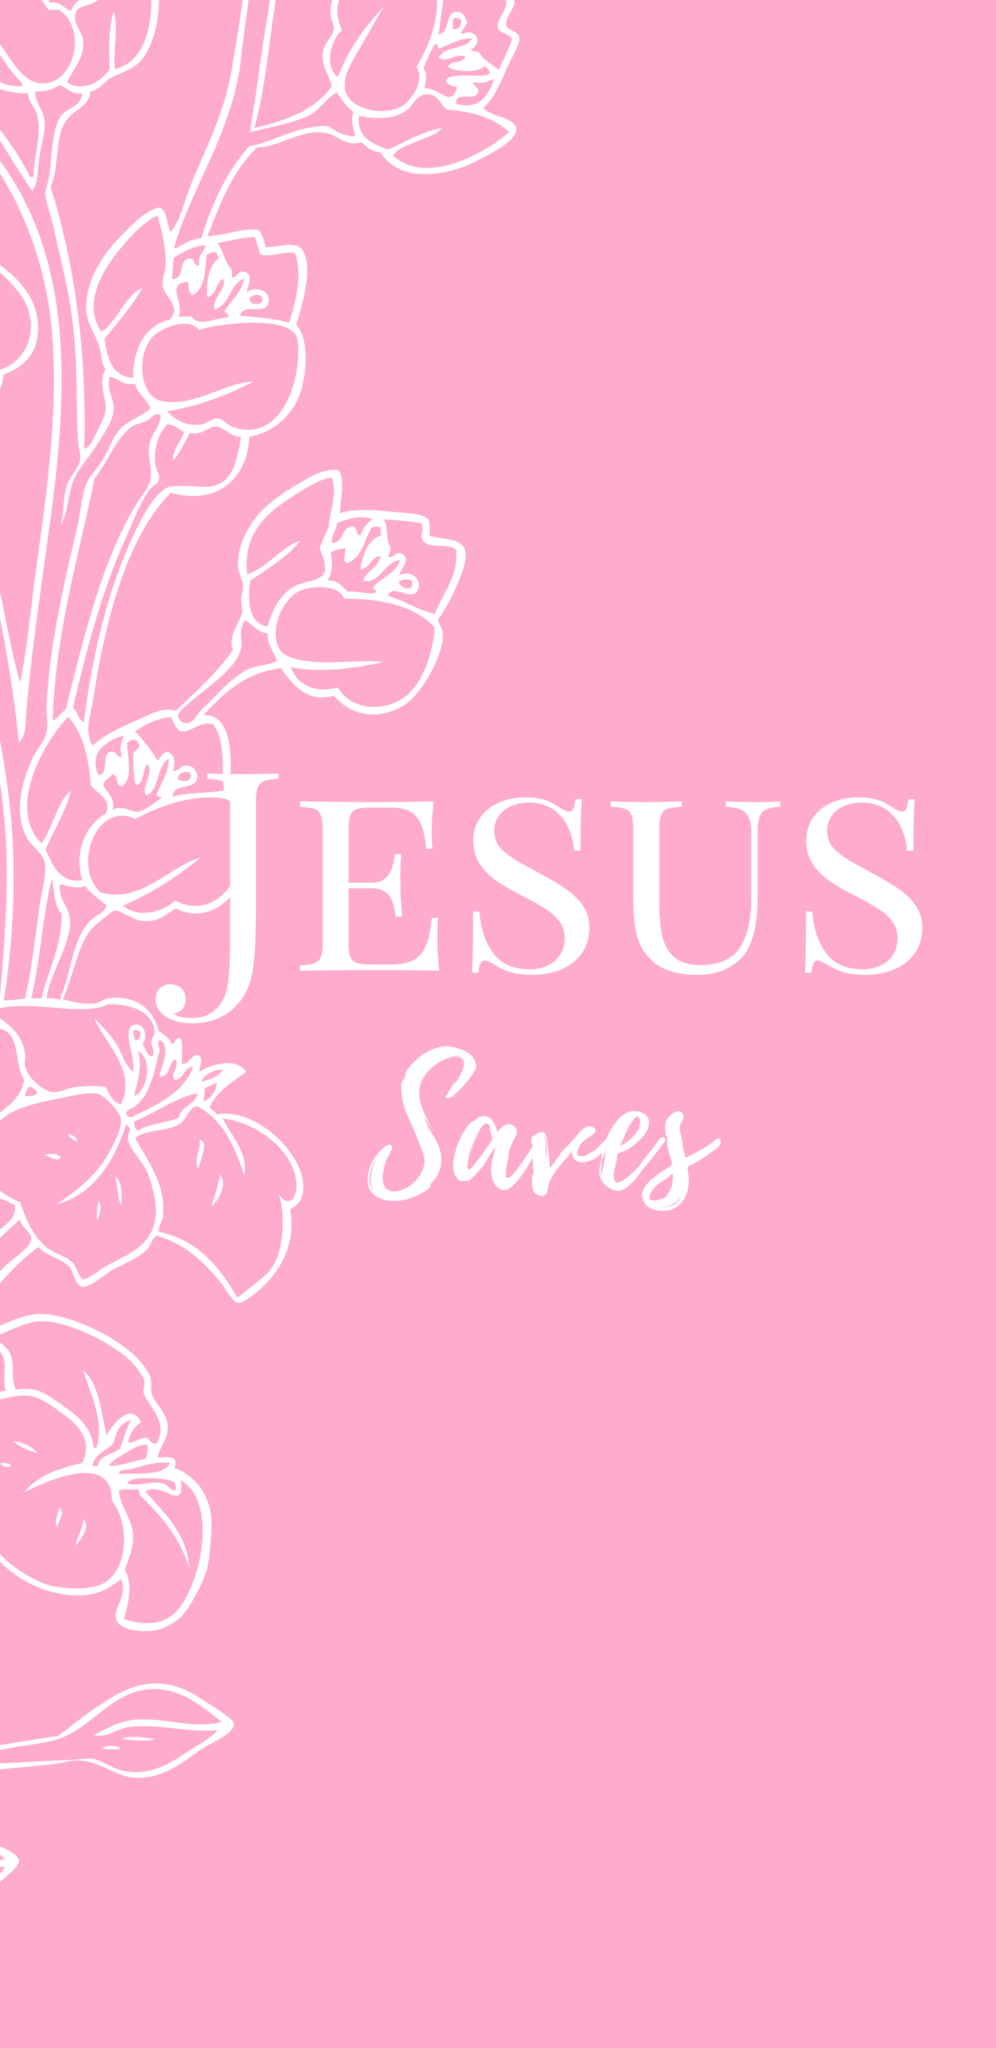 Jesus Themed Christian Wallpapers Christian Wallpaper Free Christian Wallpaper Free Christian